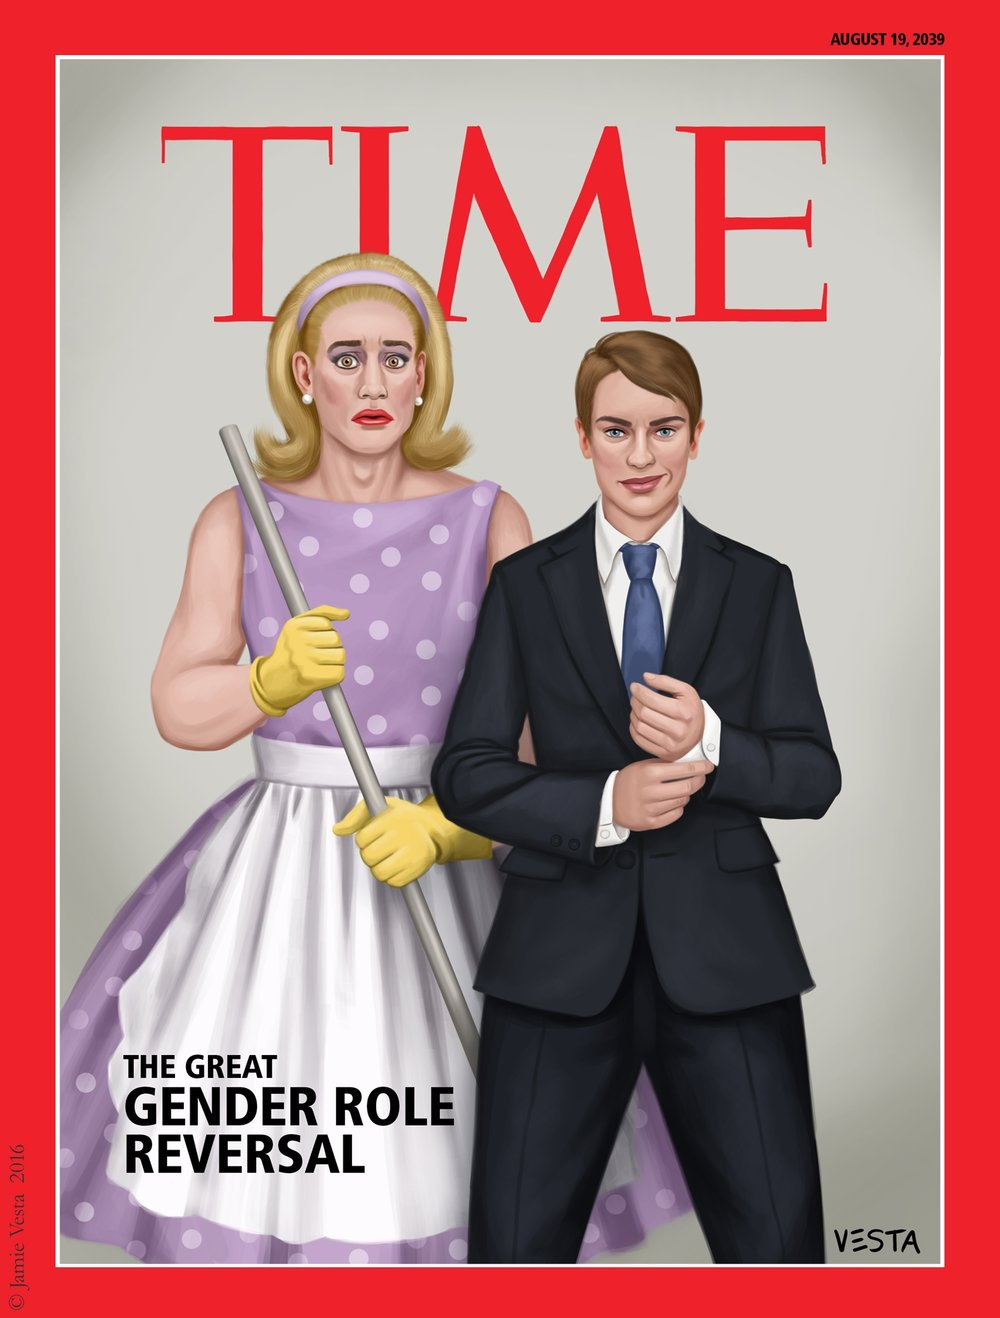 the_great_gender_role_reversal_by_eves_rib-dapnhid.jpg